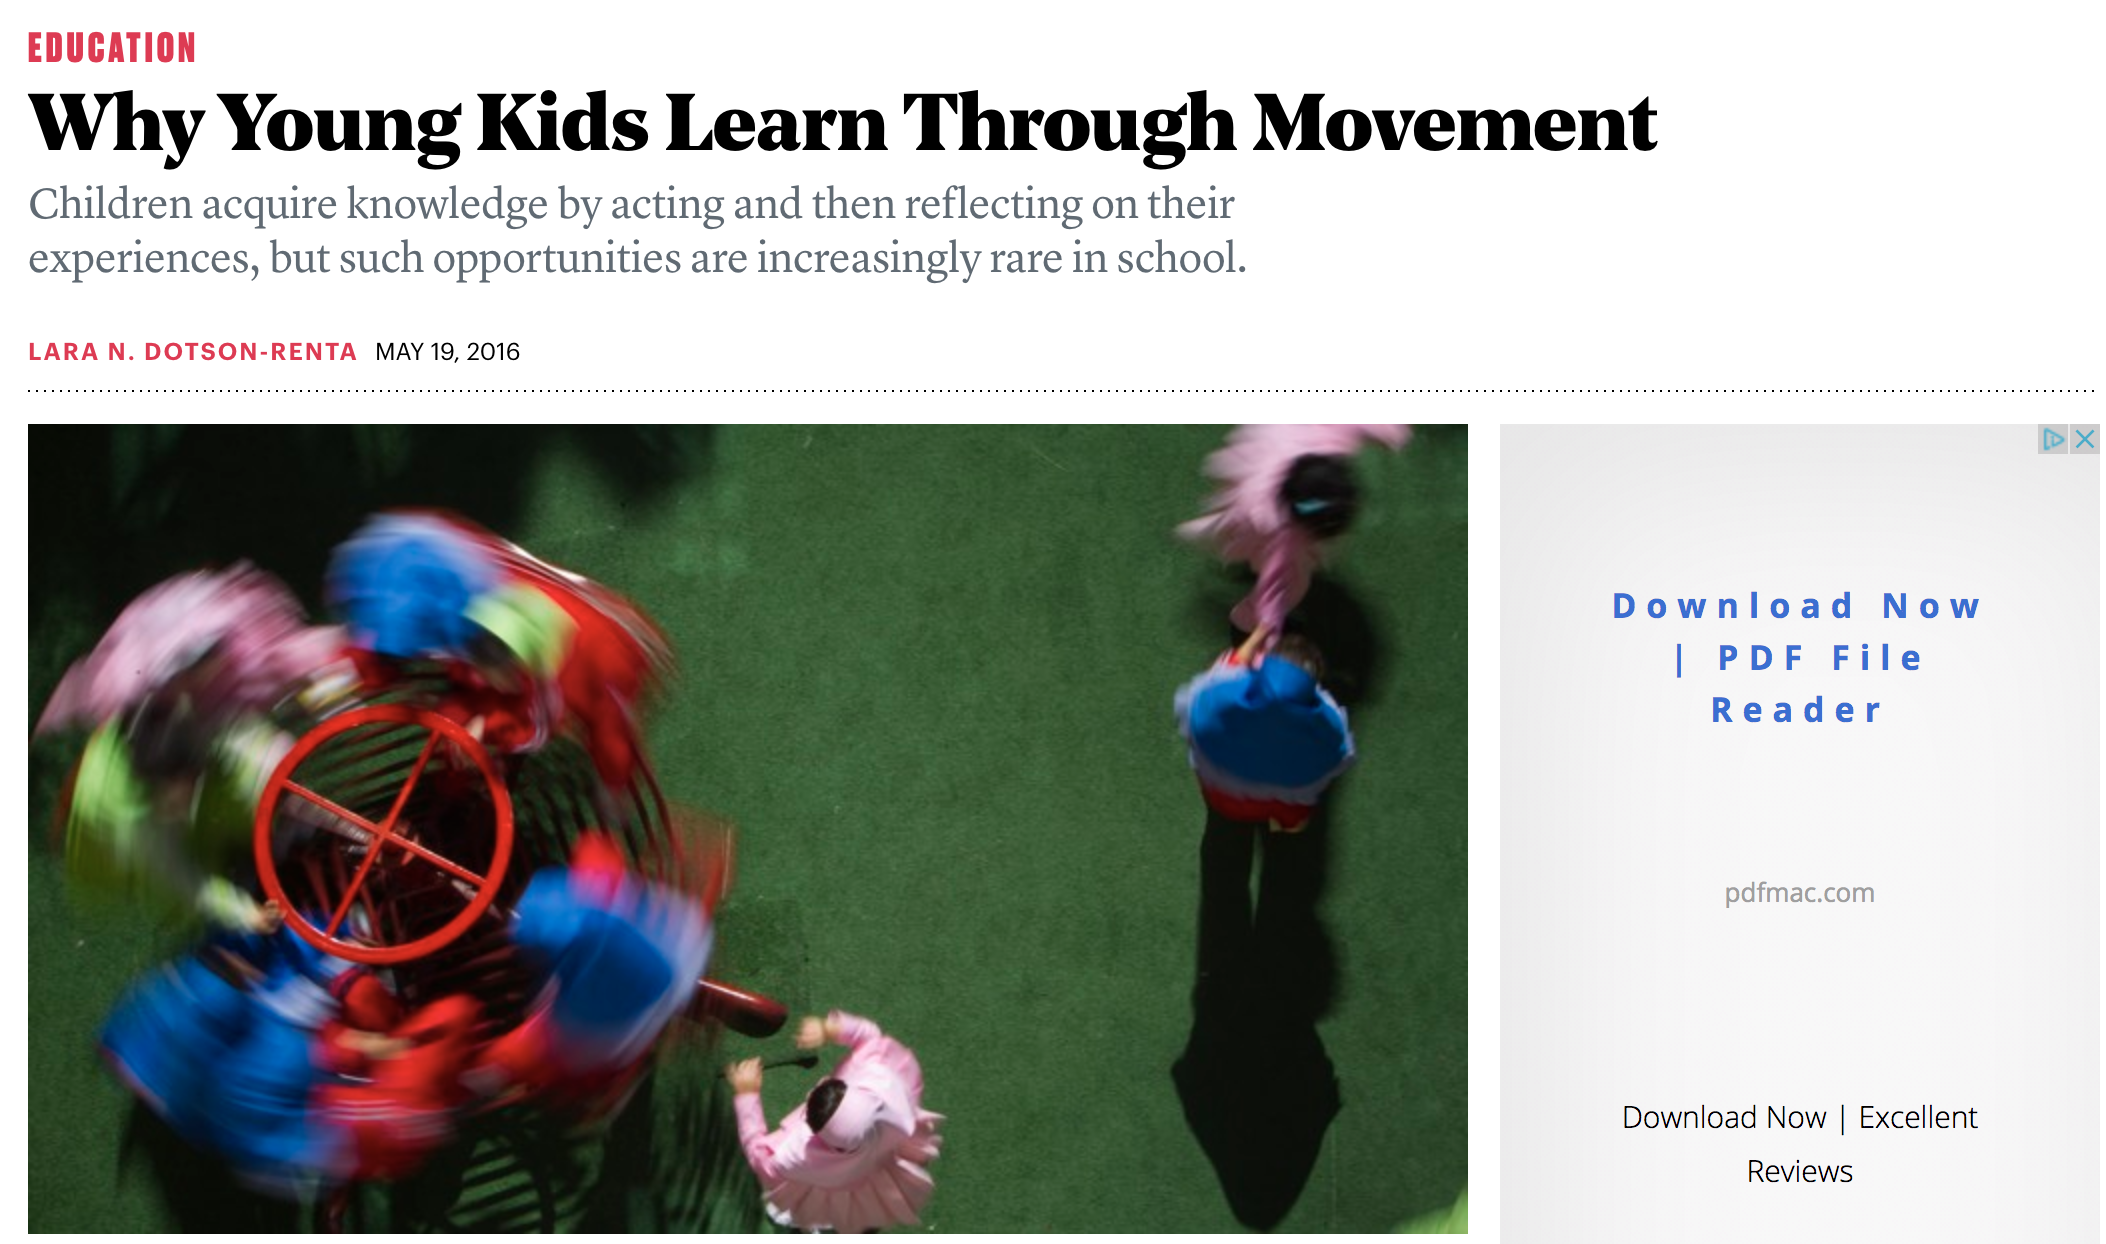 ARTICLE: Why Young Kids Learn Through Movement   Children acquire knowledge by acting and then reflecting on their experiences, but such opportunities are increasingly rare in school.